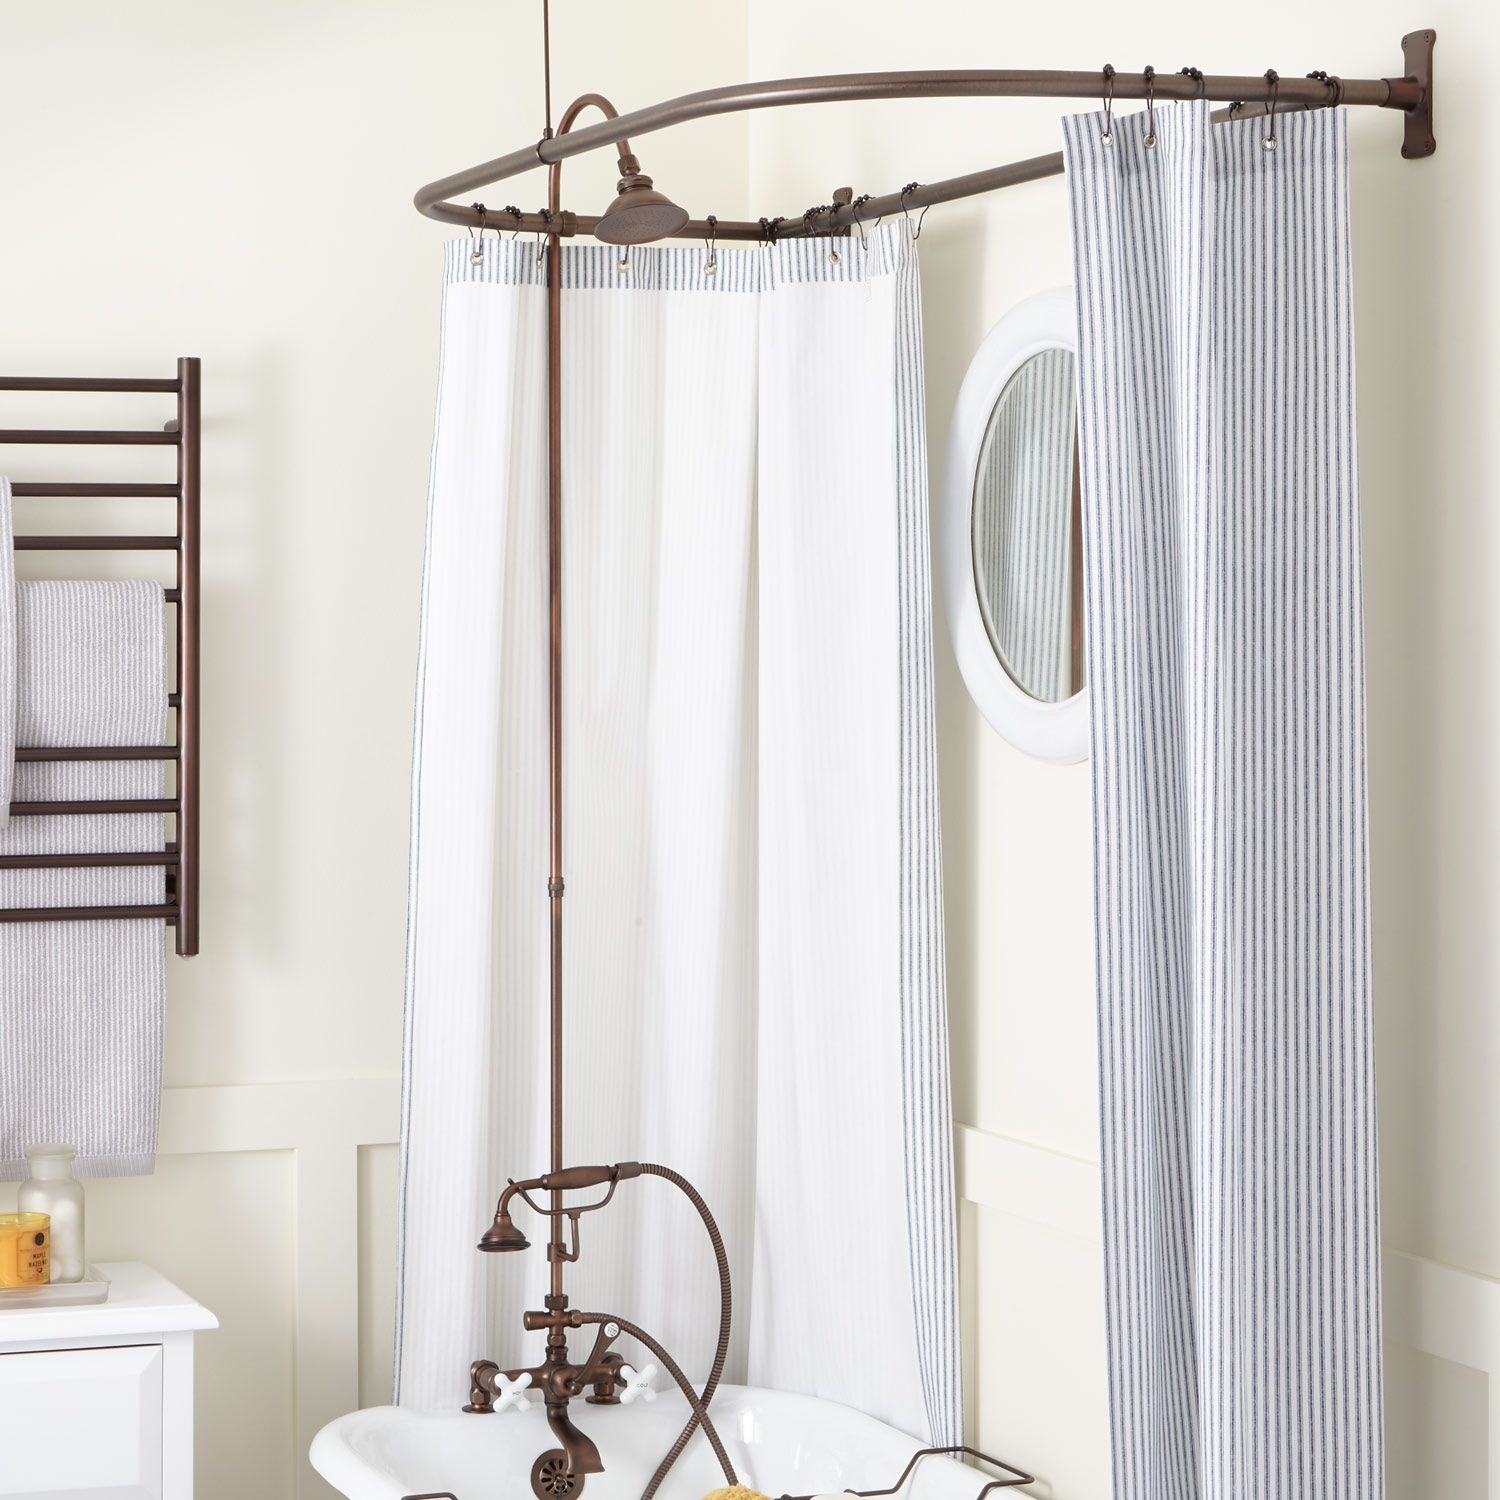 Conversion Kit In Br Shower